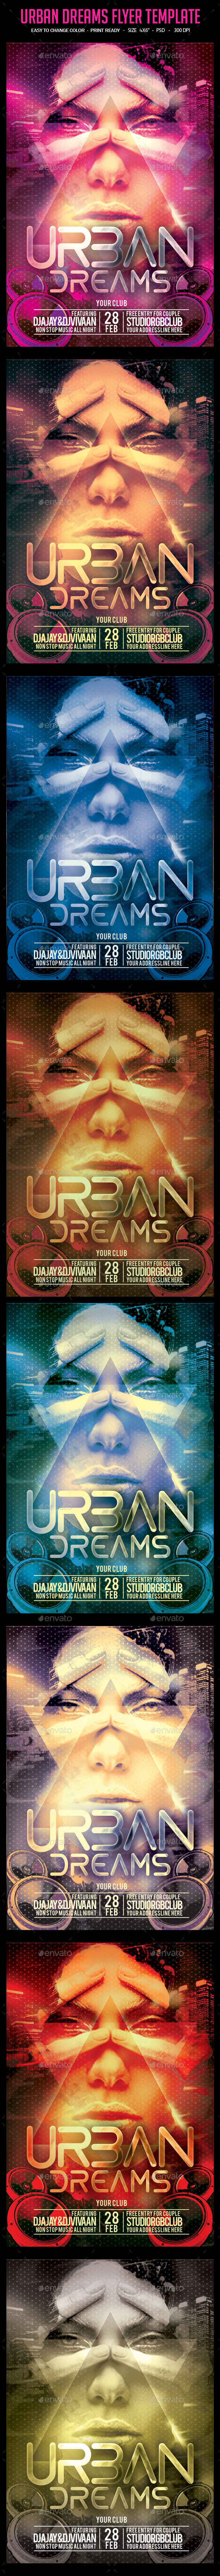 Urban Dreams Flyer Template - Clubs & Parties Events